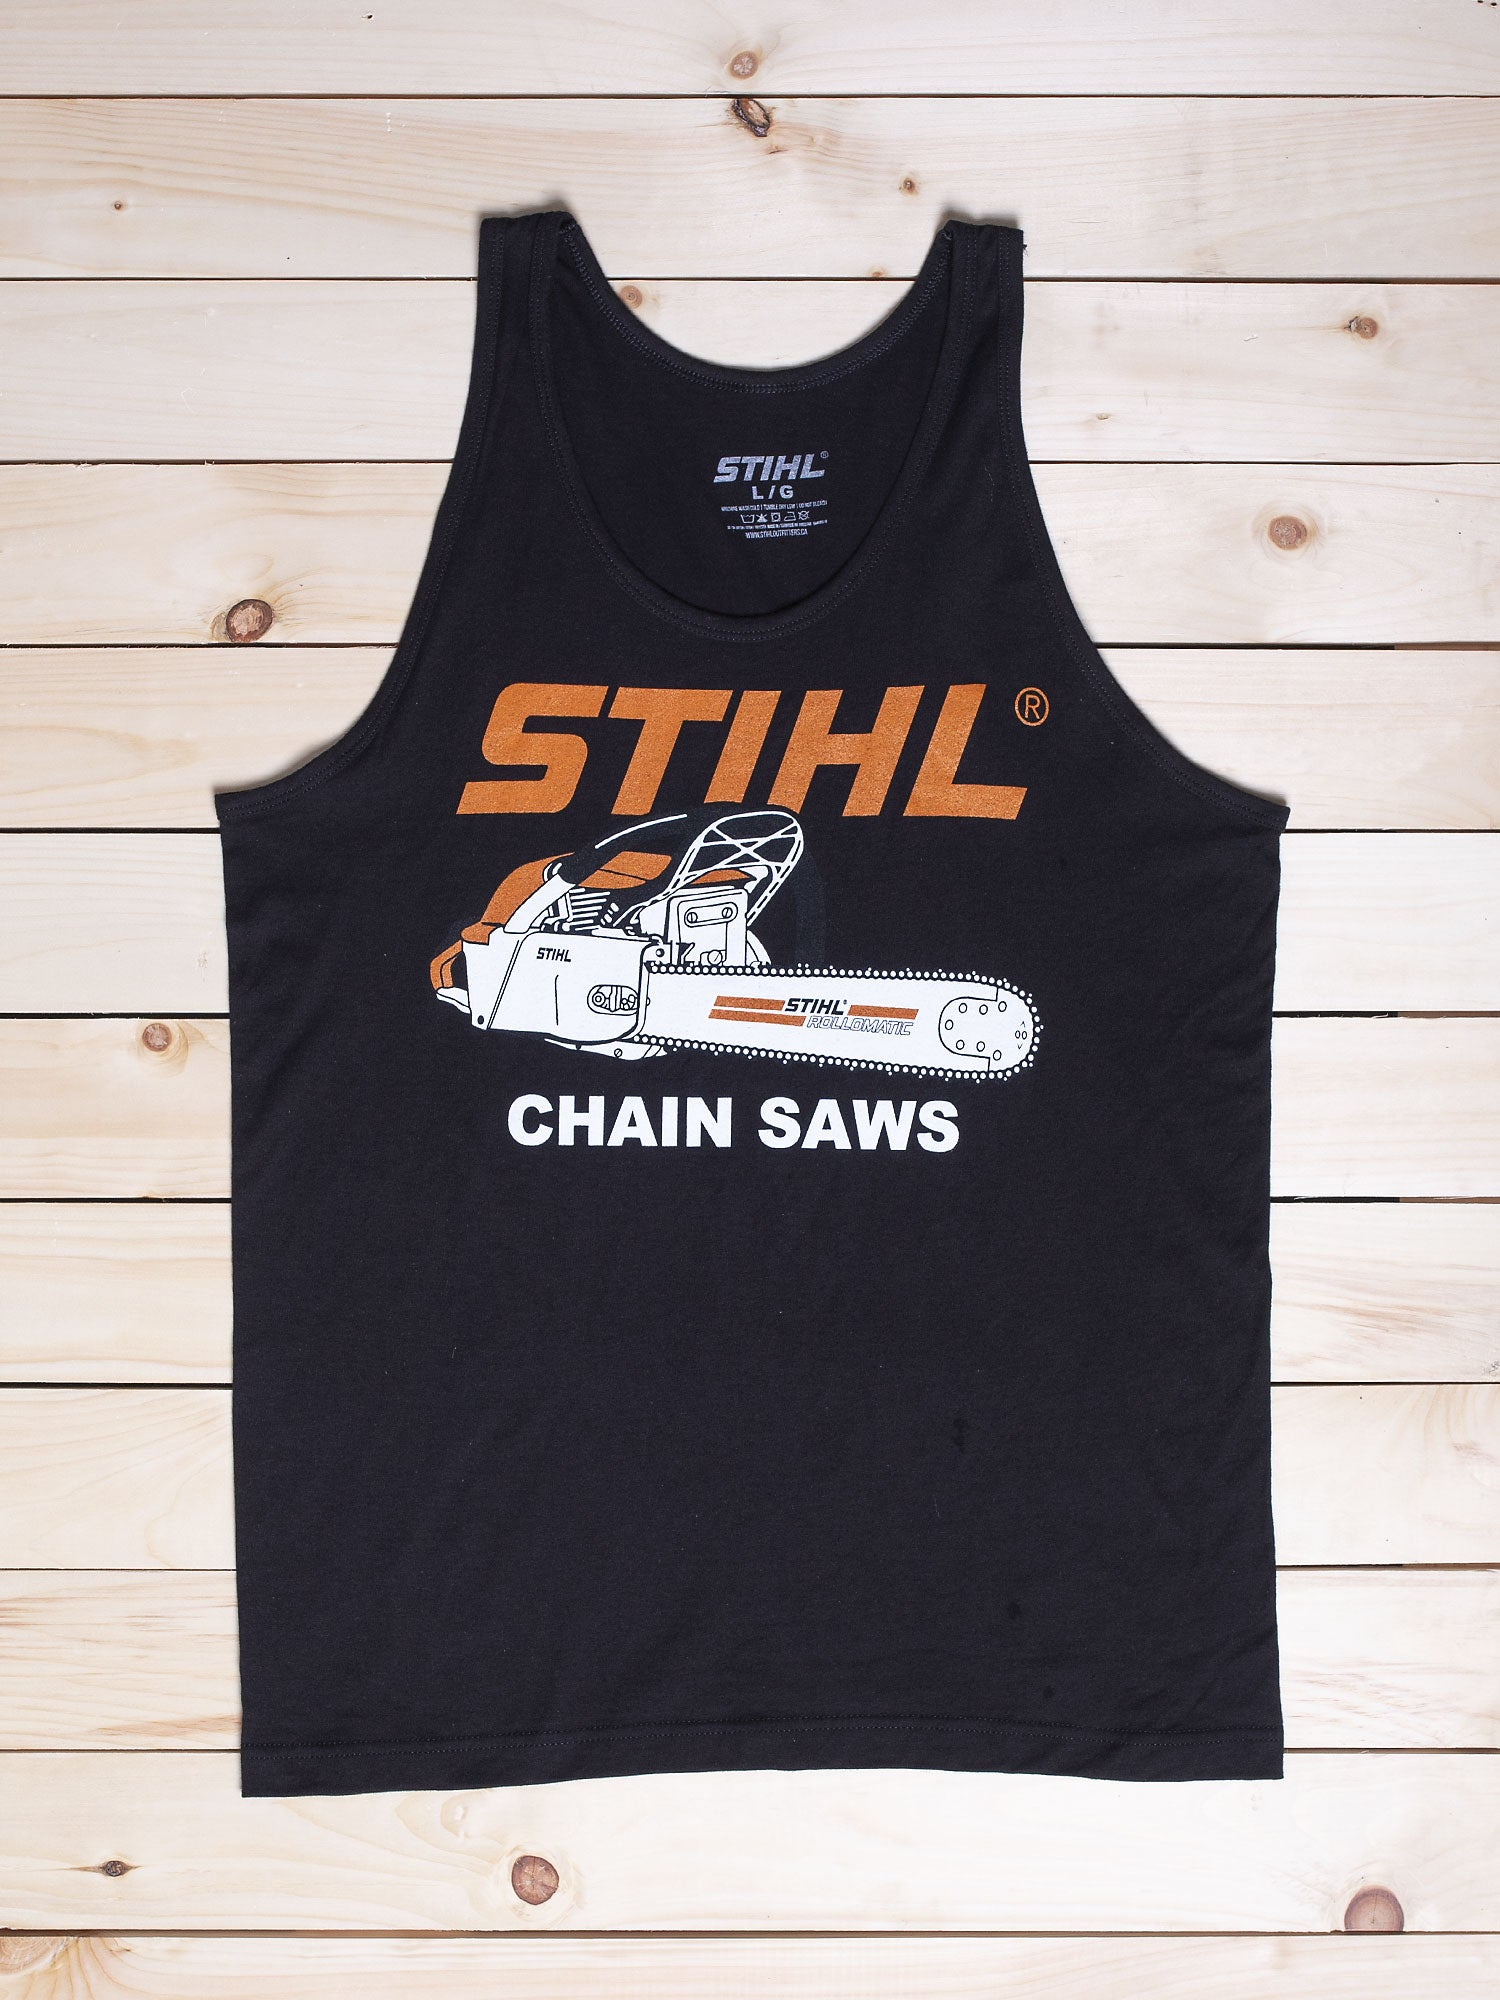 STIHL CHAIN SAWS TANK TOP